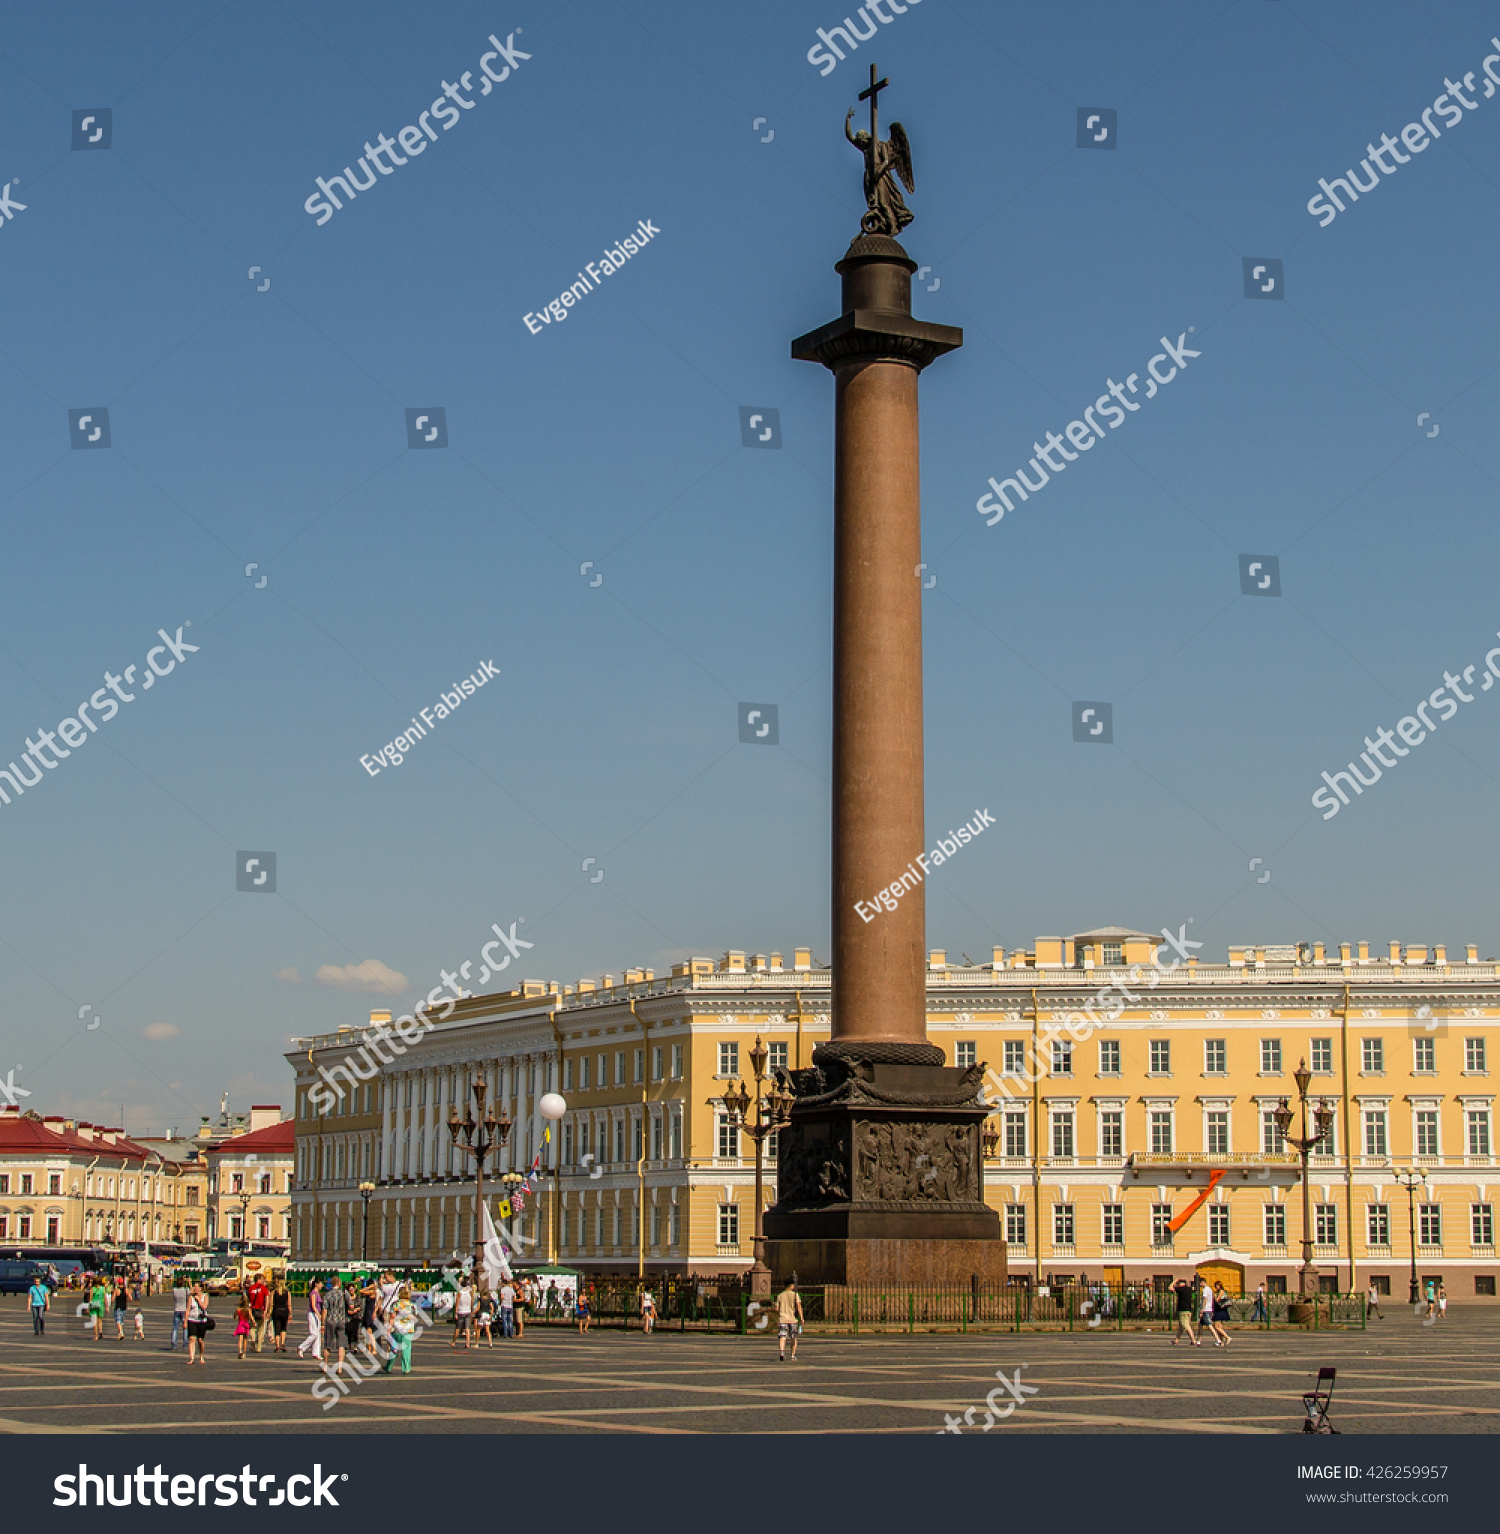 Palace Square St Petersburg Russia Stock Photo 426259957 - Shutterstock